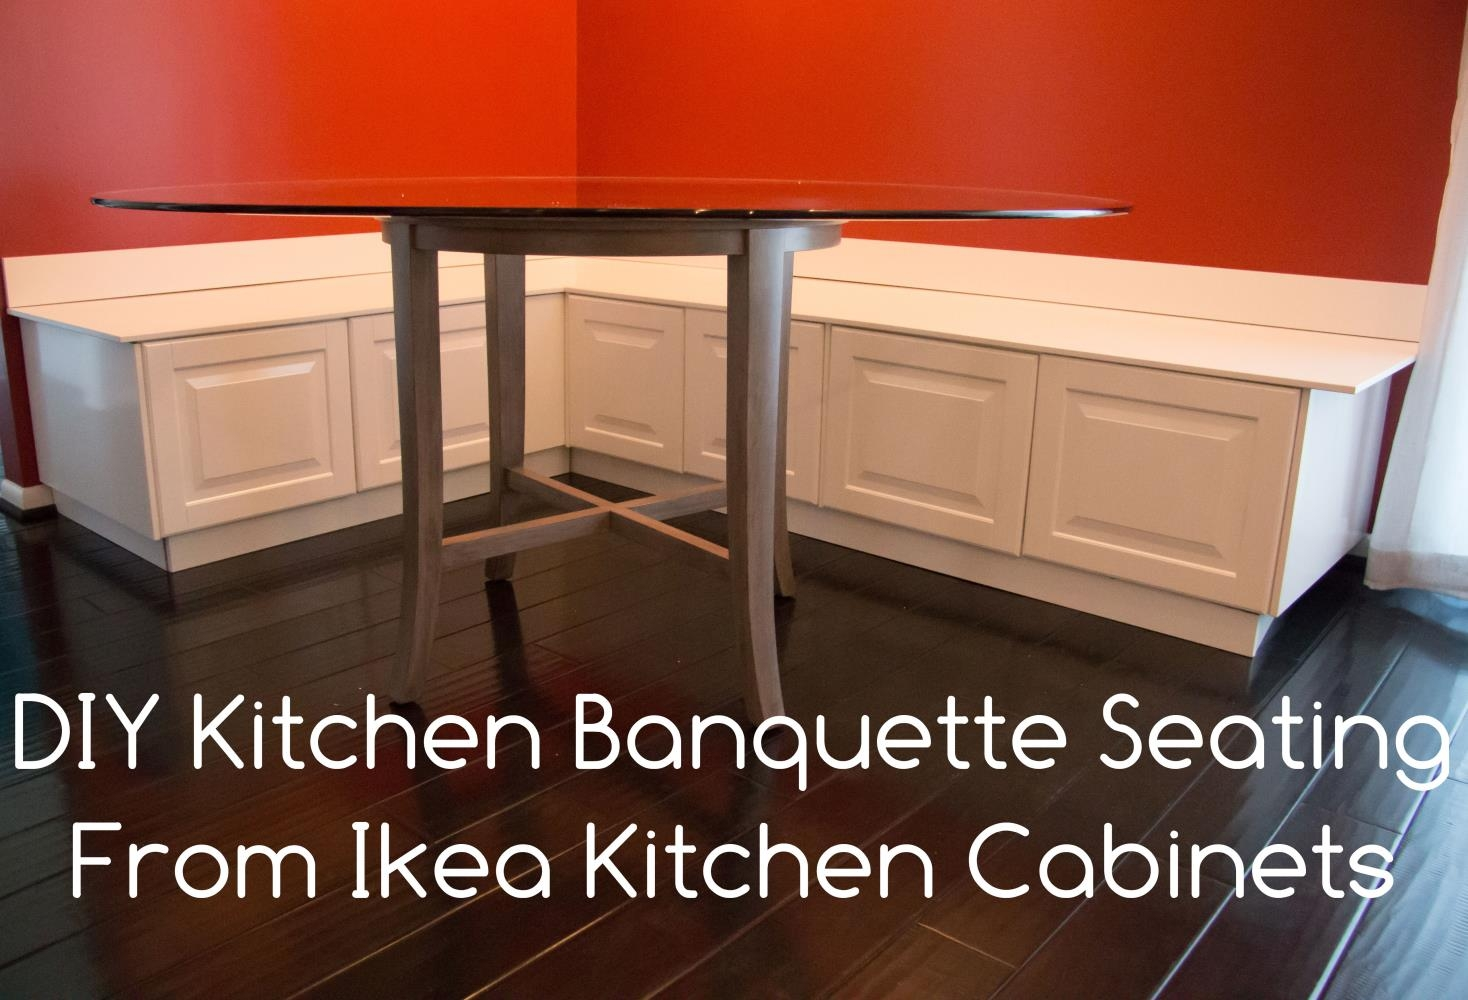 Diy office desk ikea kitchen Ikea Hackers Ikeadiykitchenbenchorbanquetteseating Thackerfuneralhomecom Diy Kitchen Banquette Bench Using Ikea Cabinets ikea Hacks